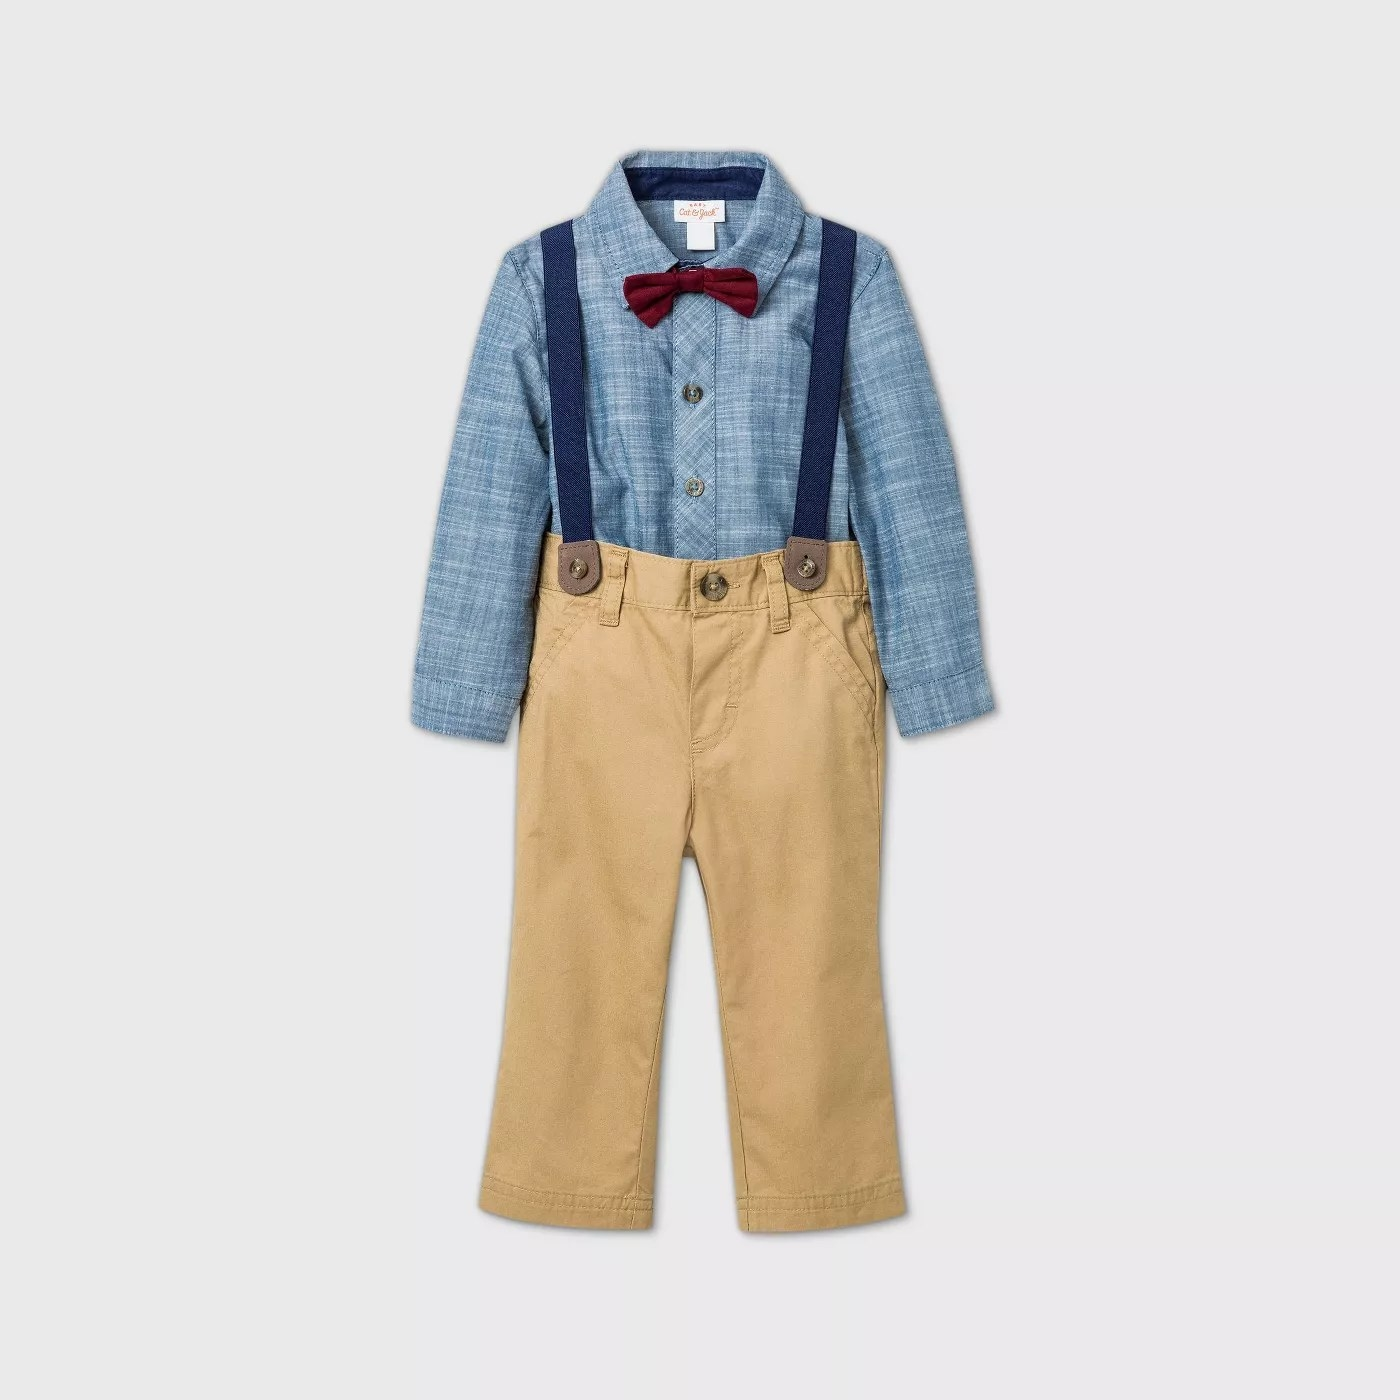 A long-sleeve, blue, buttondown bodysuit, a pair of chinos, a pair of suspenders, and a red bowtie